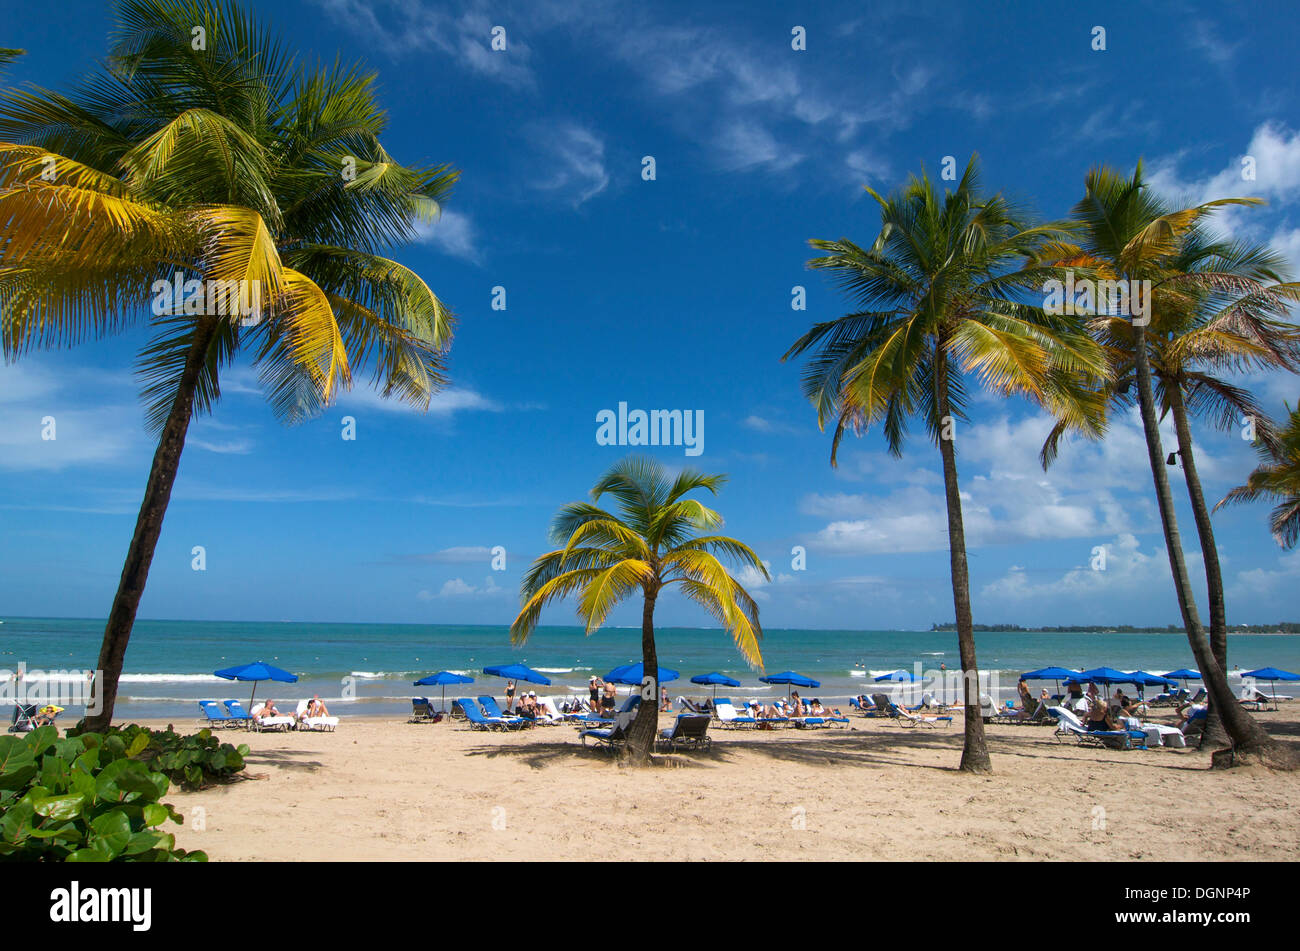 Beach with palm trees in San Juan, Puerto Rico, Caribbean - Stock Image